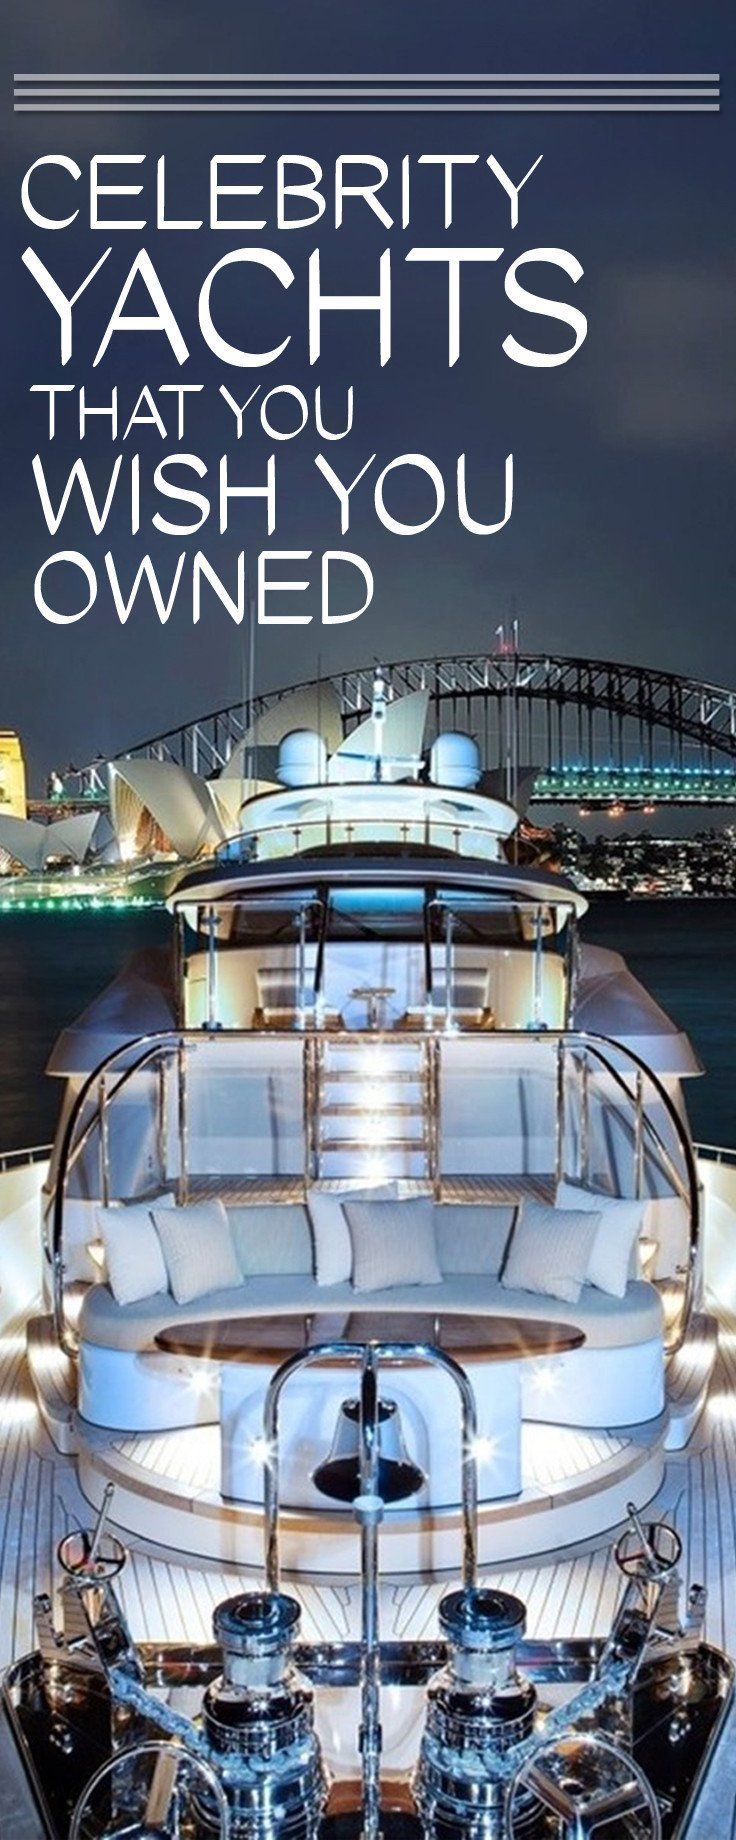 Awe Inspiring Celebrity Yachts Sure To Give You A Major Case Of